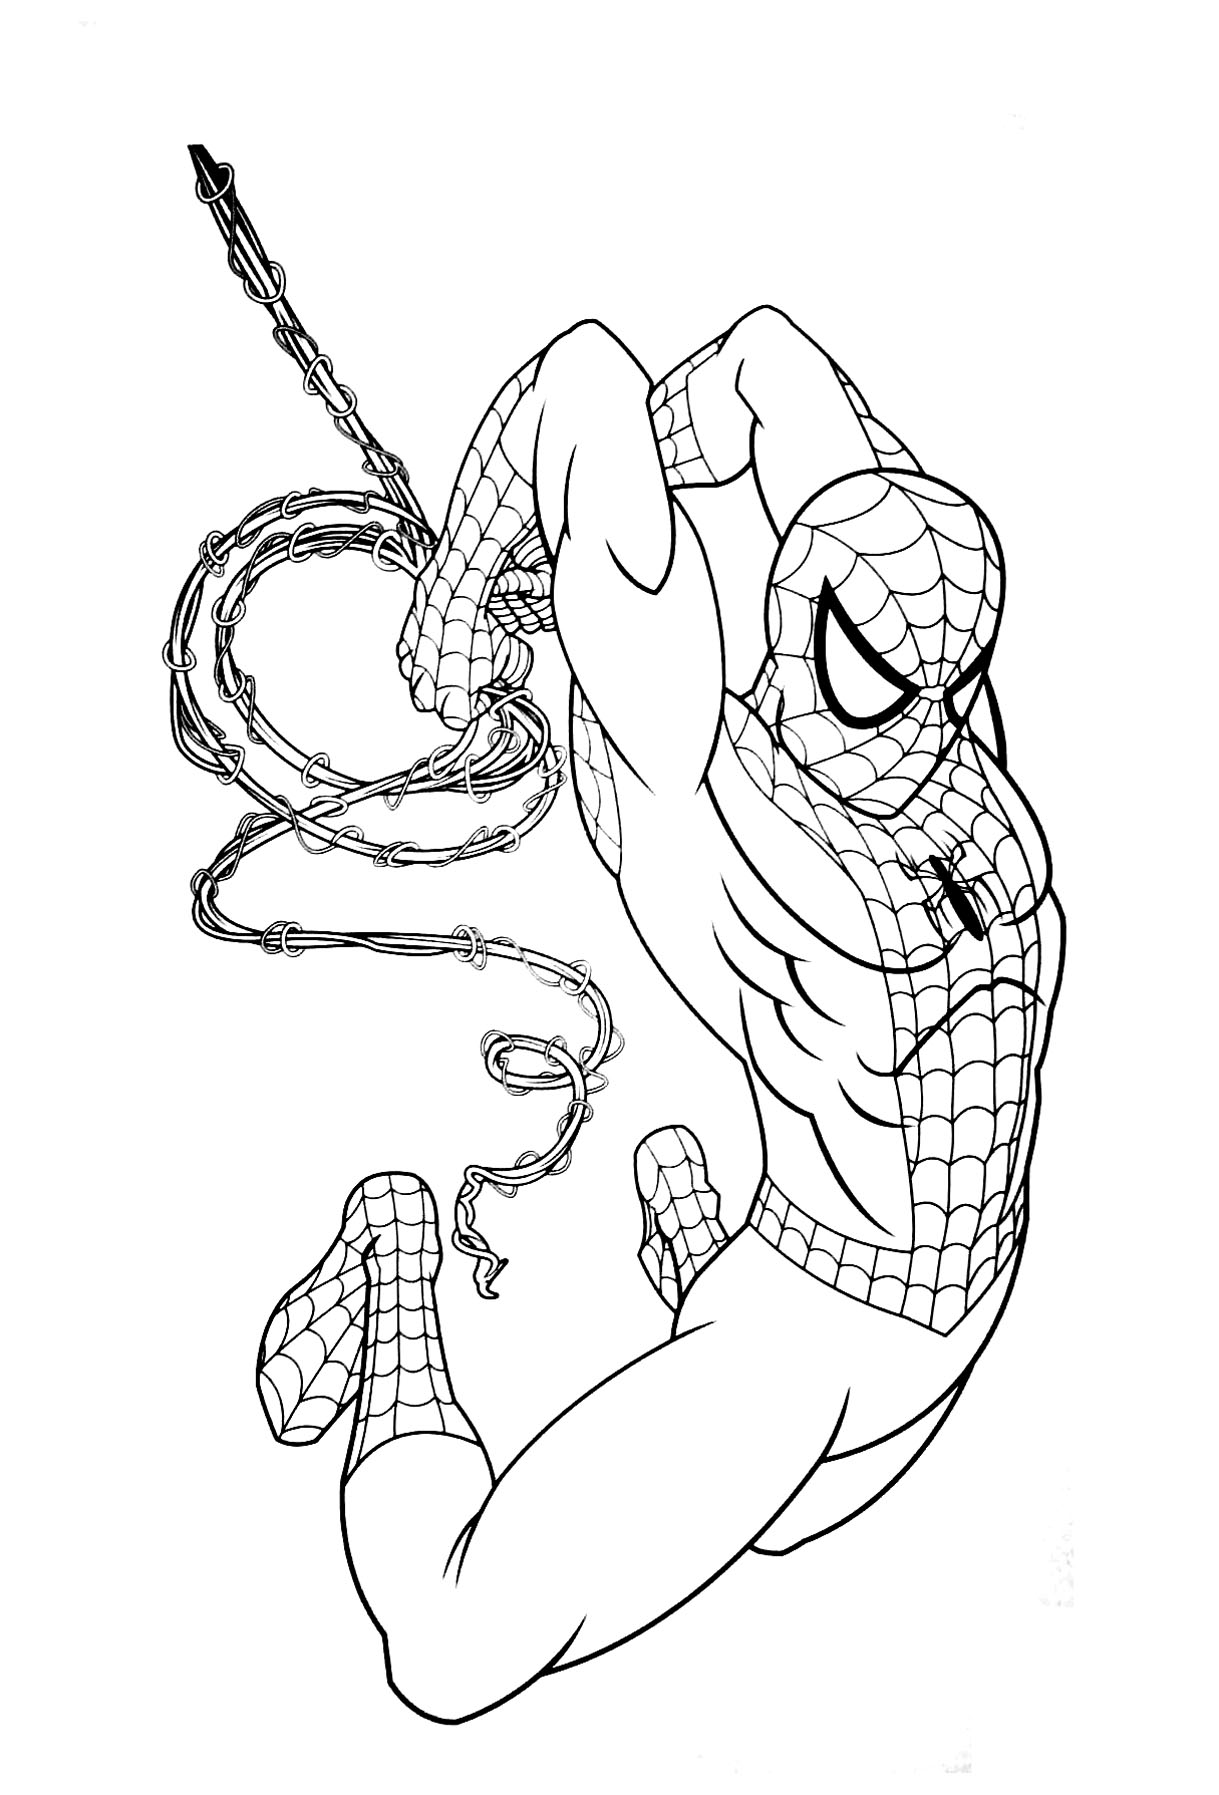 coloring sheet spiderman coloring pages spiderman coloring pages the sun flower pages coloring spiderman coloring sheet pages